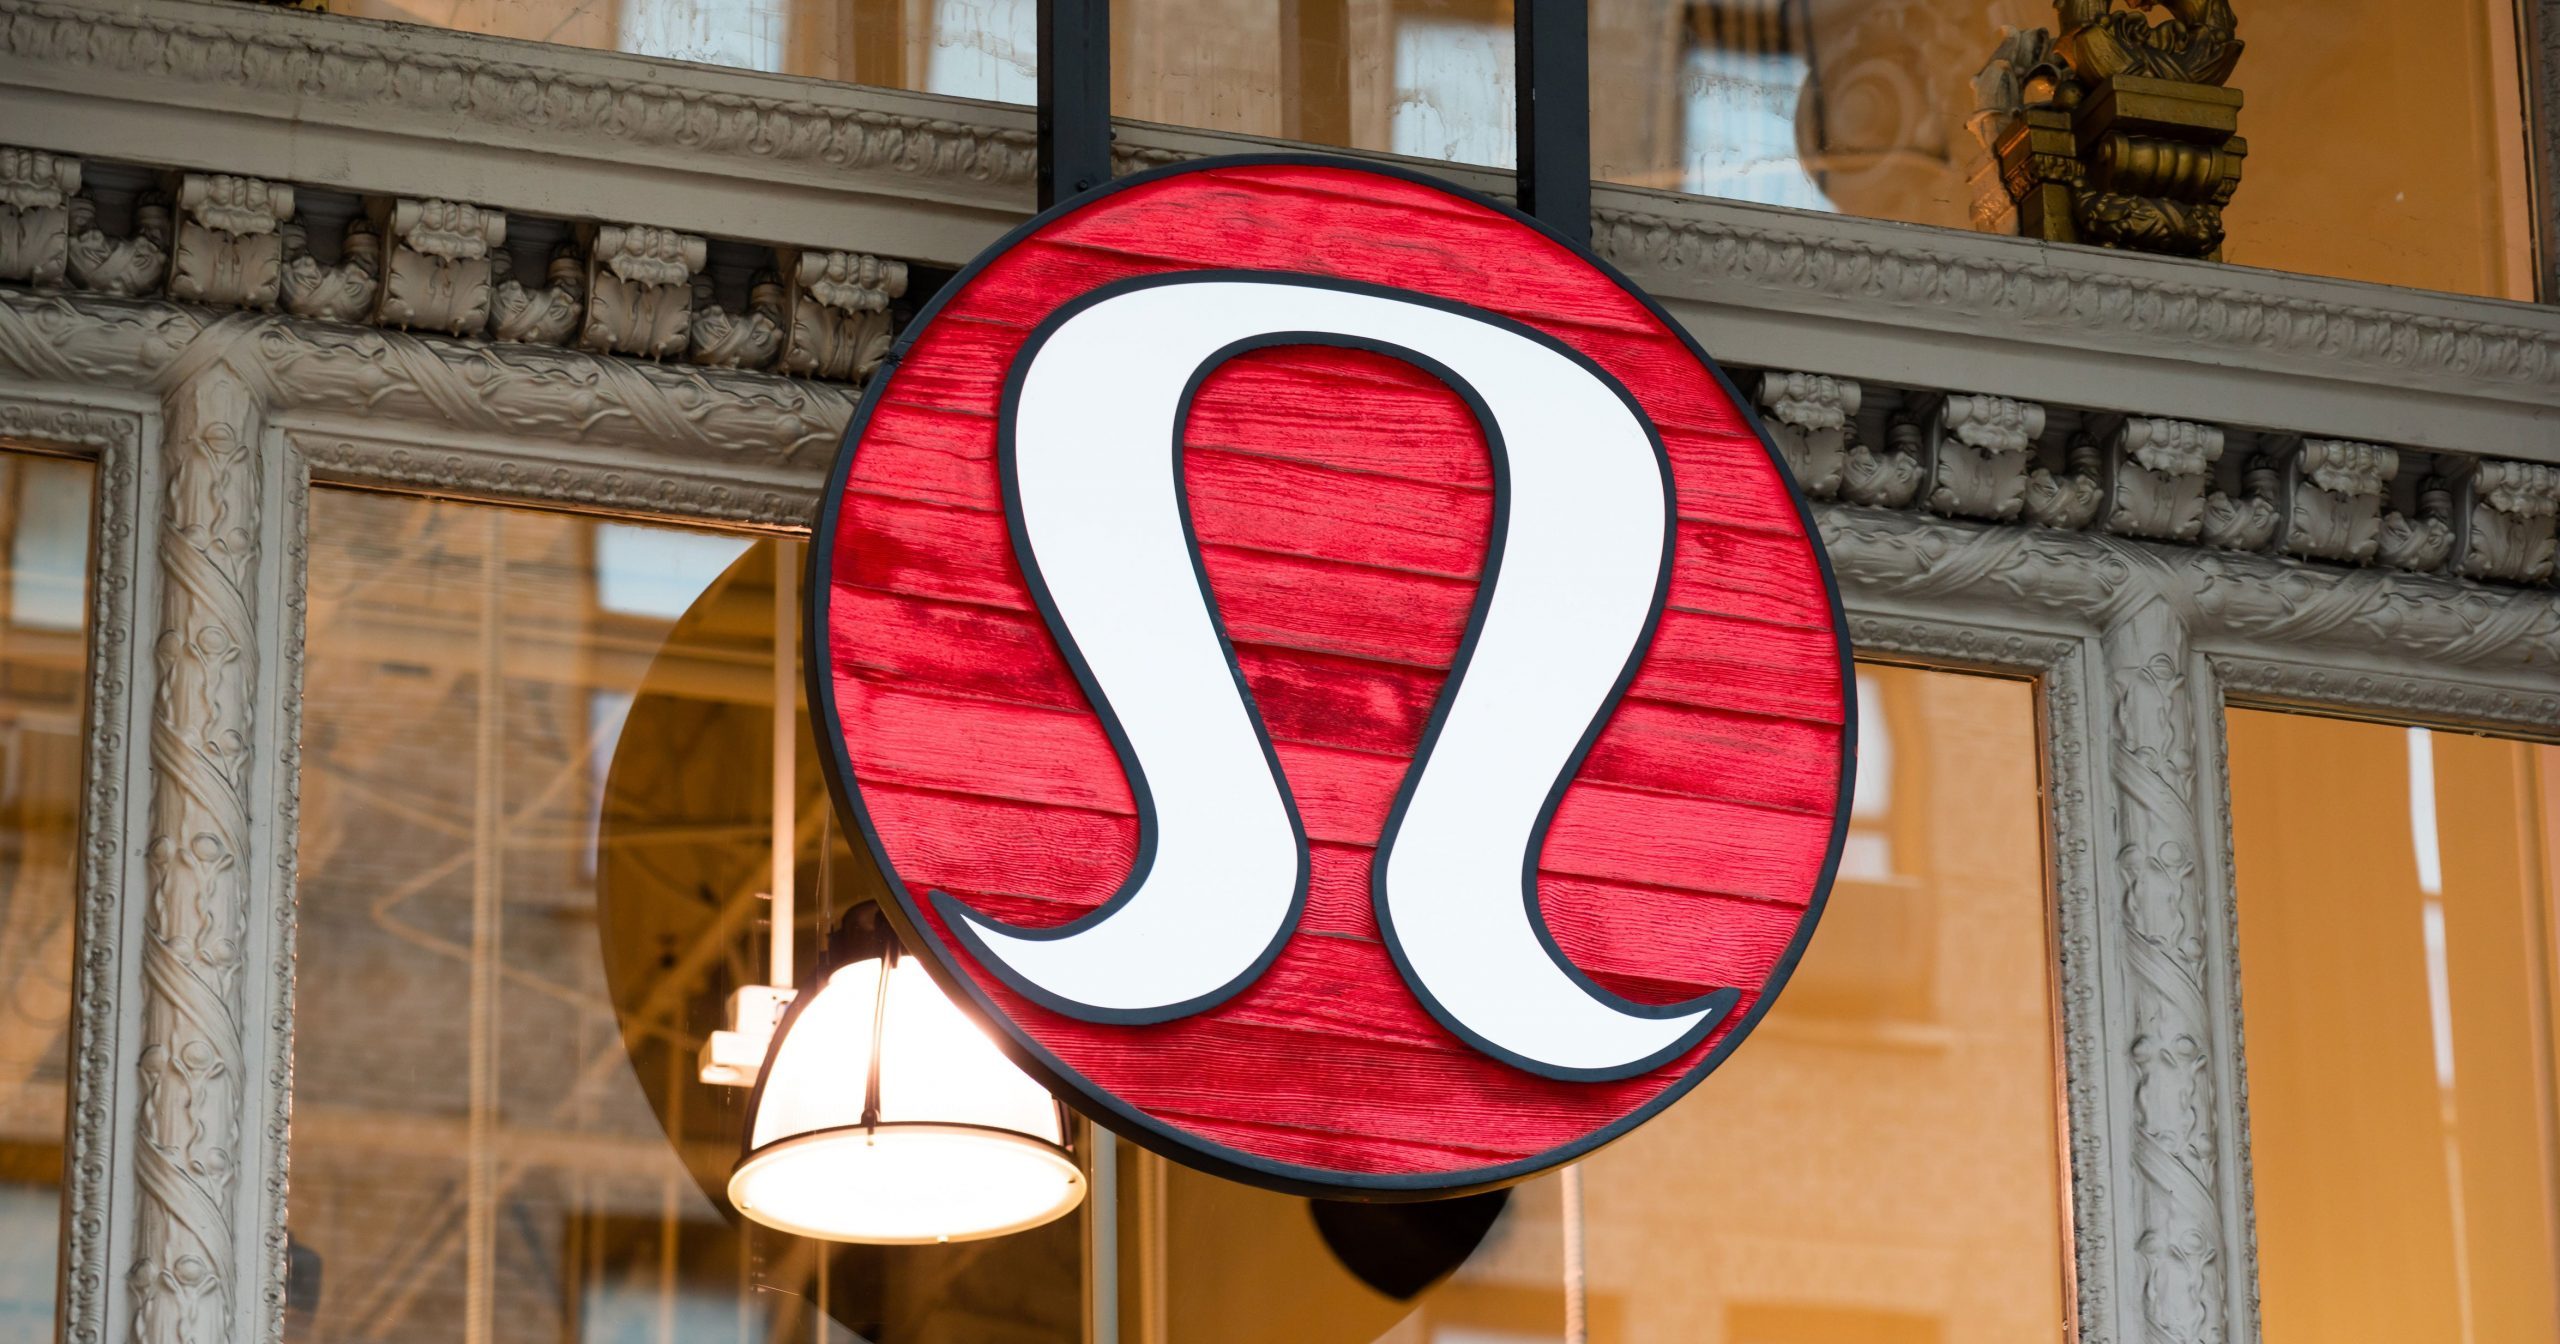 Lululemon Fires Employee Over Racist Shirt Controversy